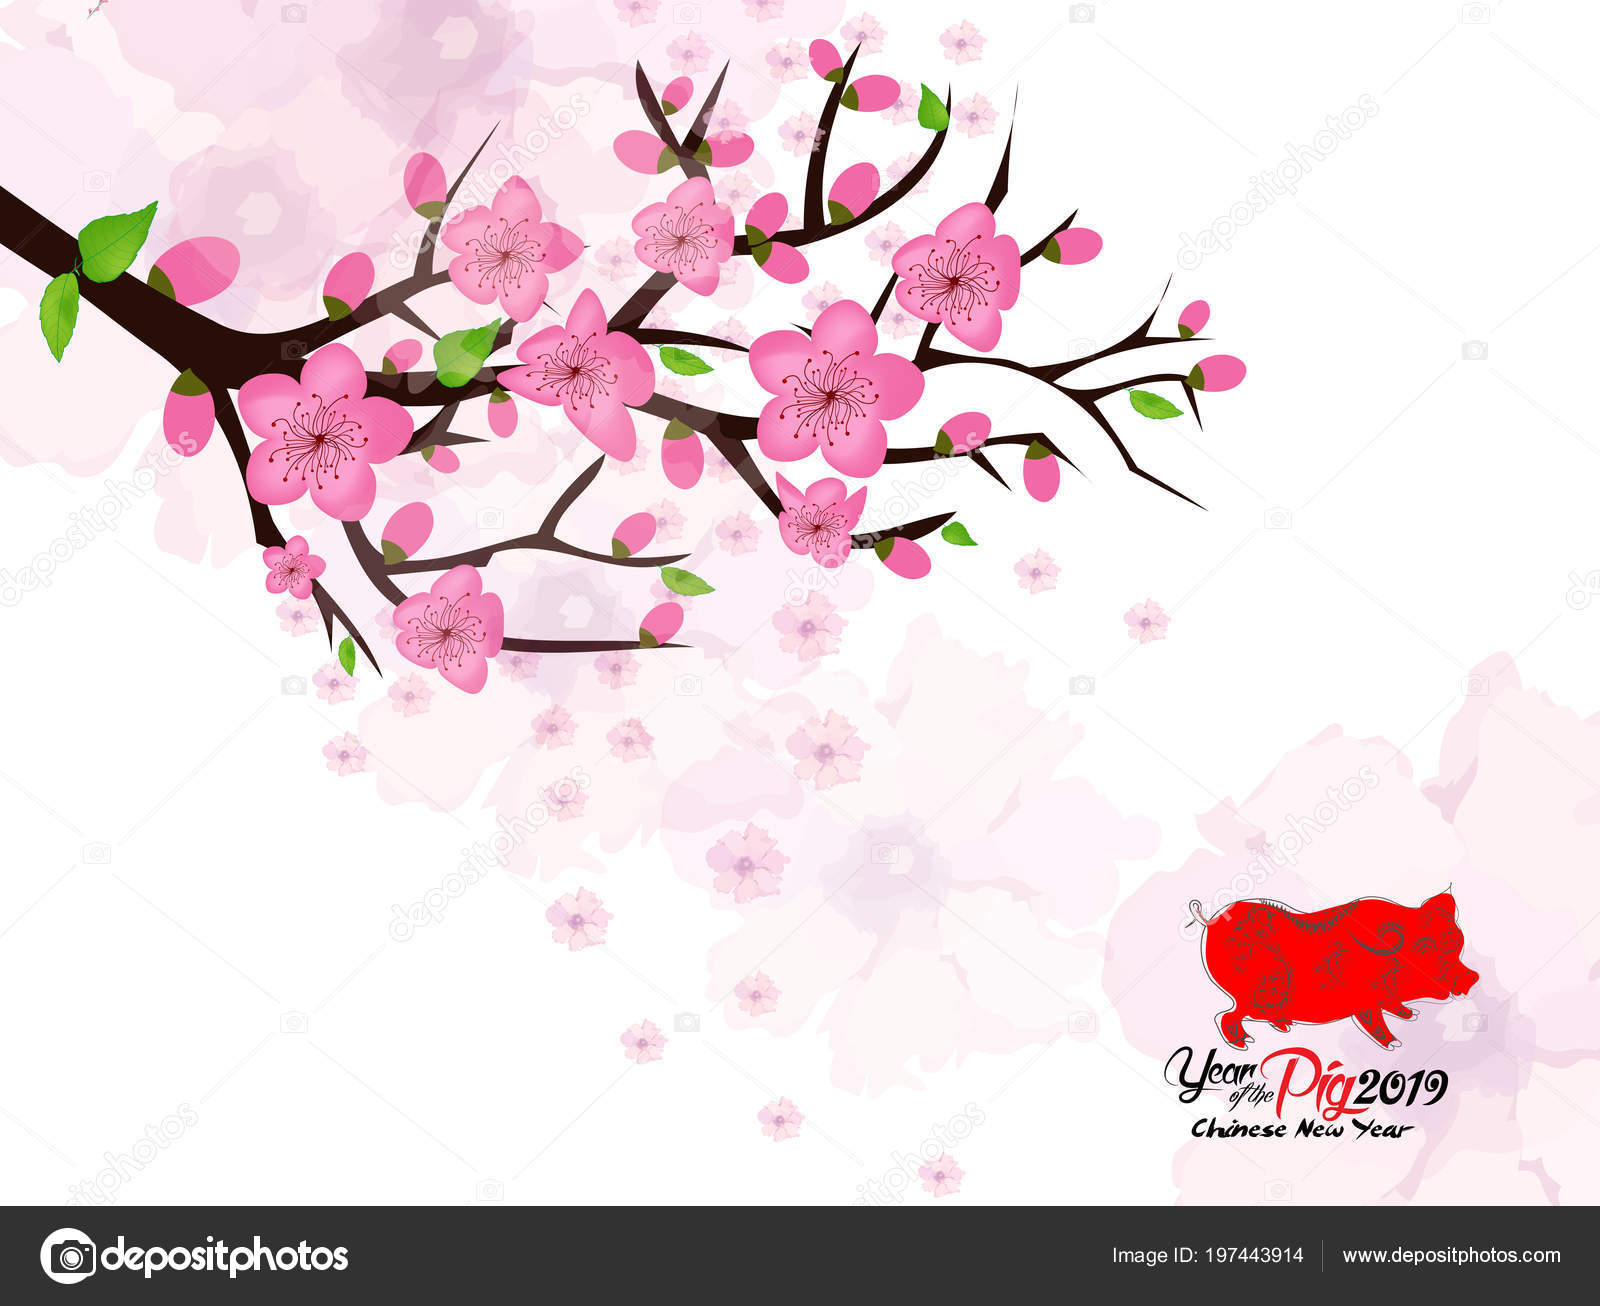 Chinese New Year Card Plum Blossom Lantern 2019 — Stock Vector ...